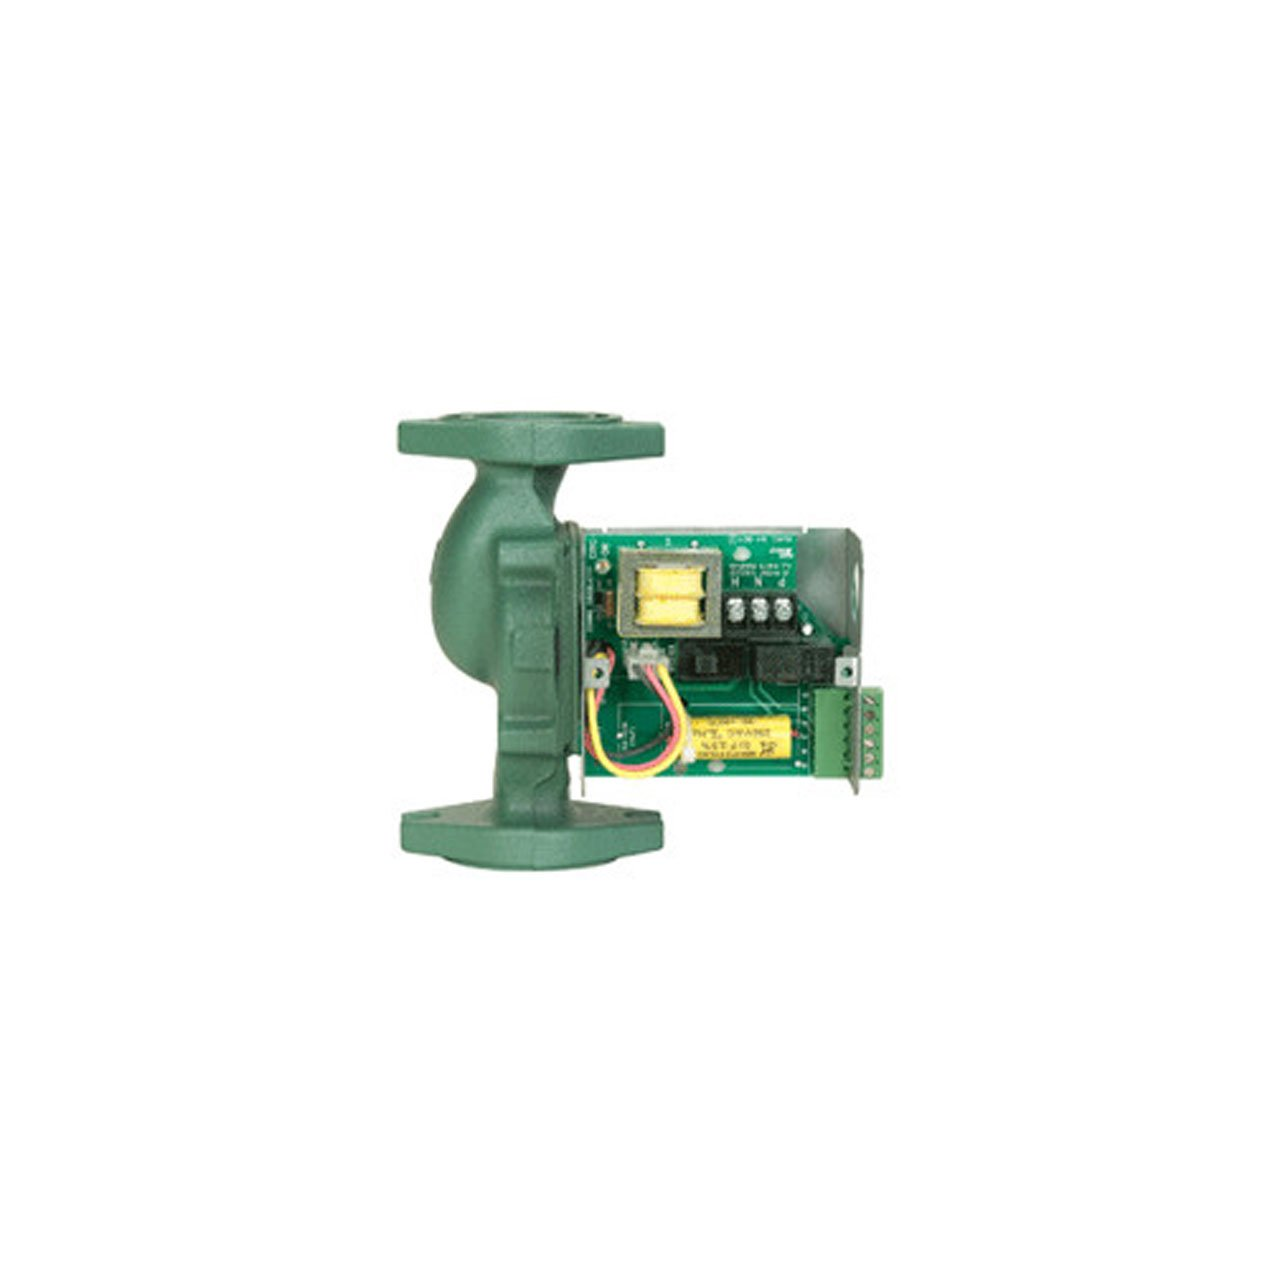 taco zf cast iron priority zoning circulator rotated taco 007 zf5 9 cast iron priority zoning circulator rotated flange tools com